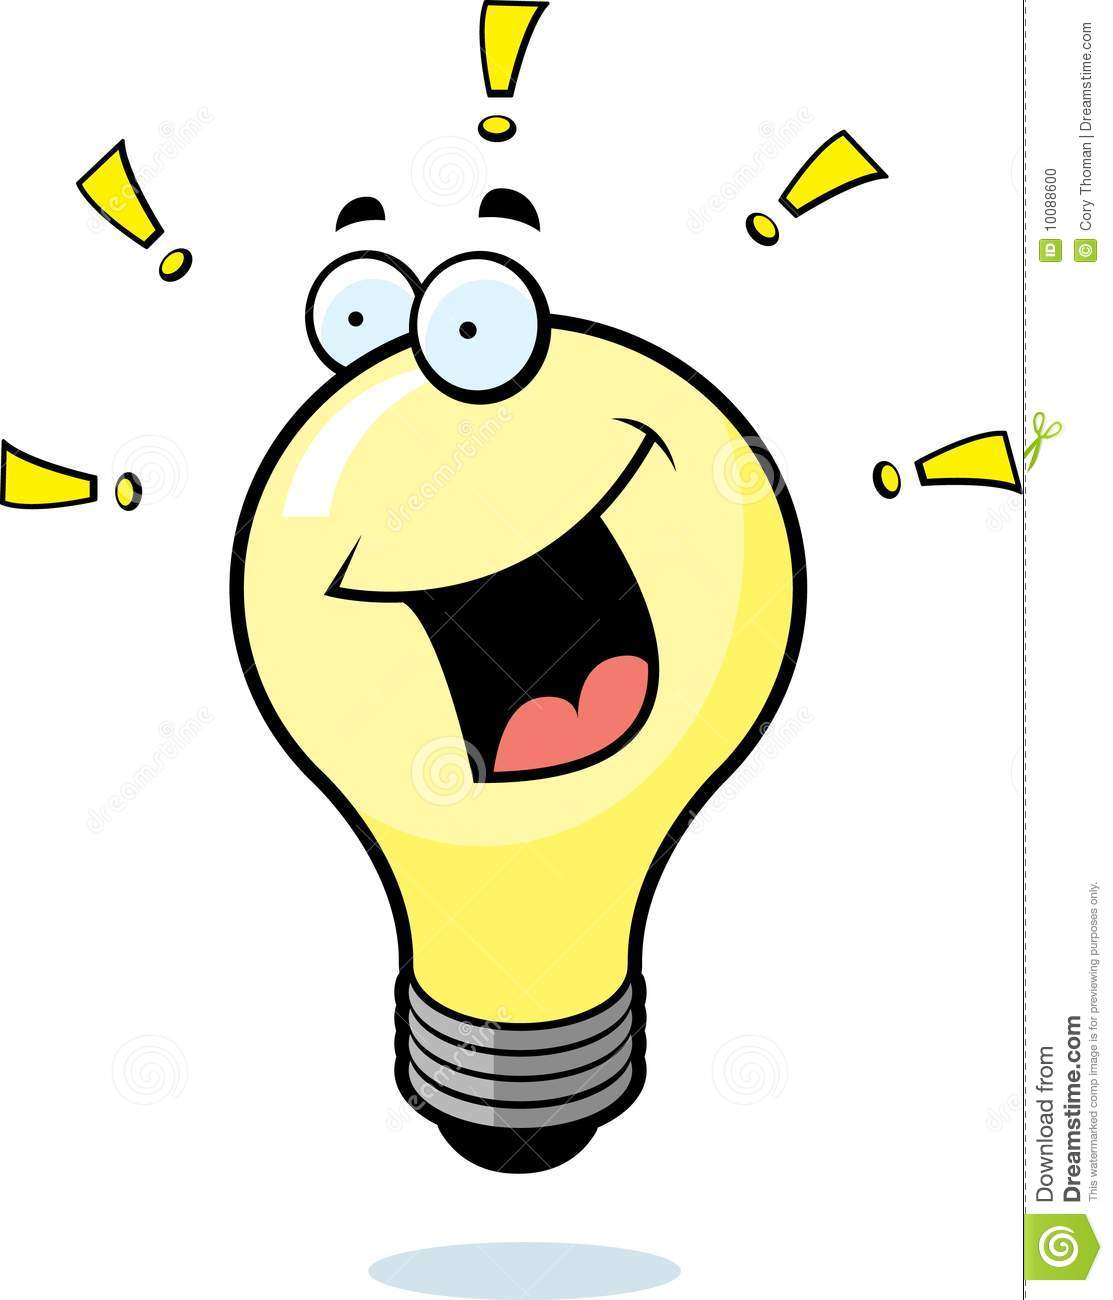 Lamps clipart thinking Clipart Free Bulb Light